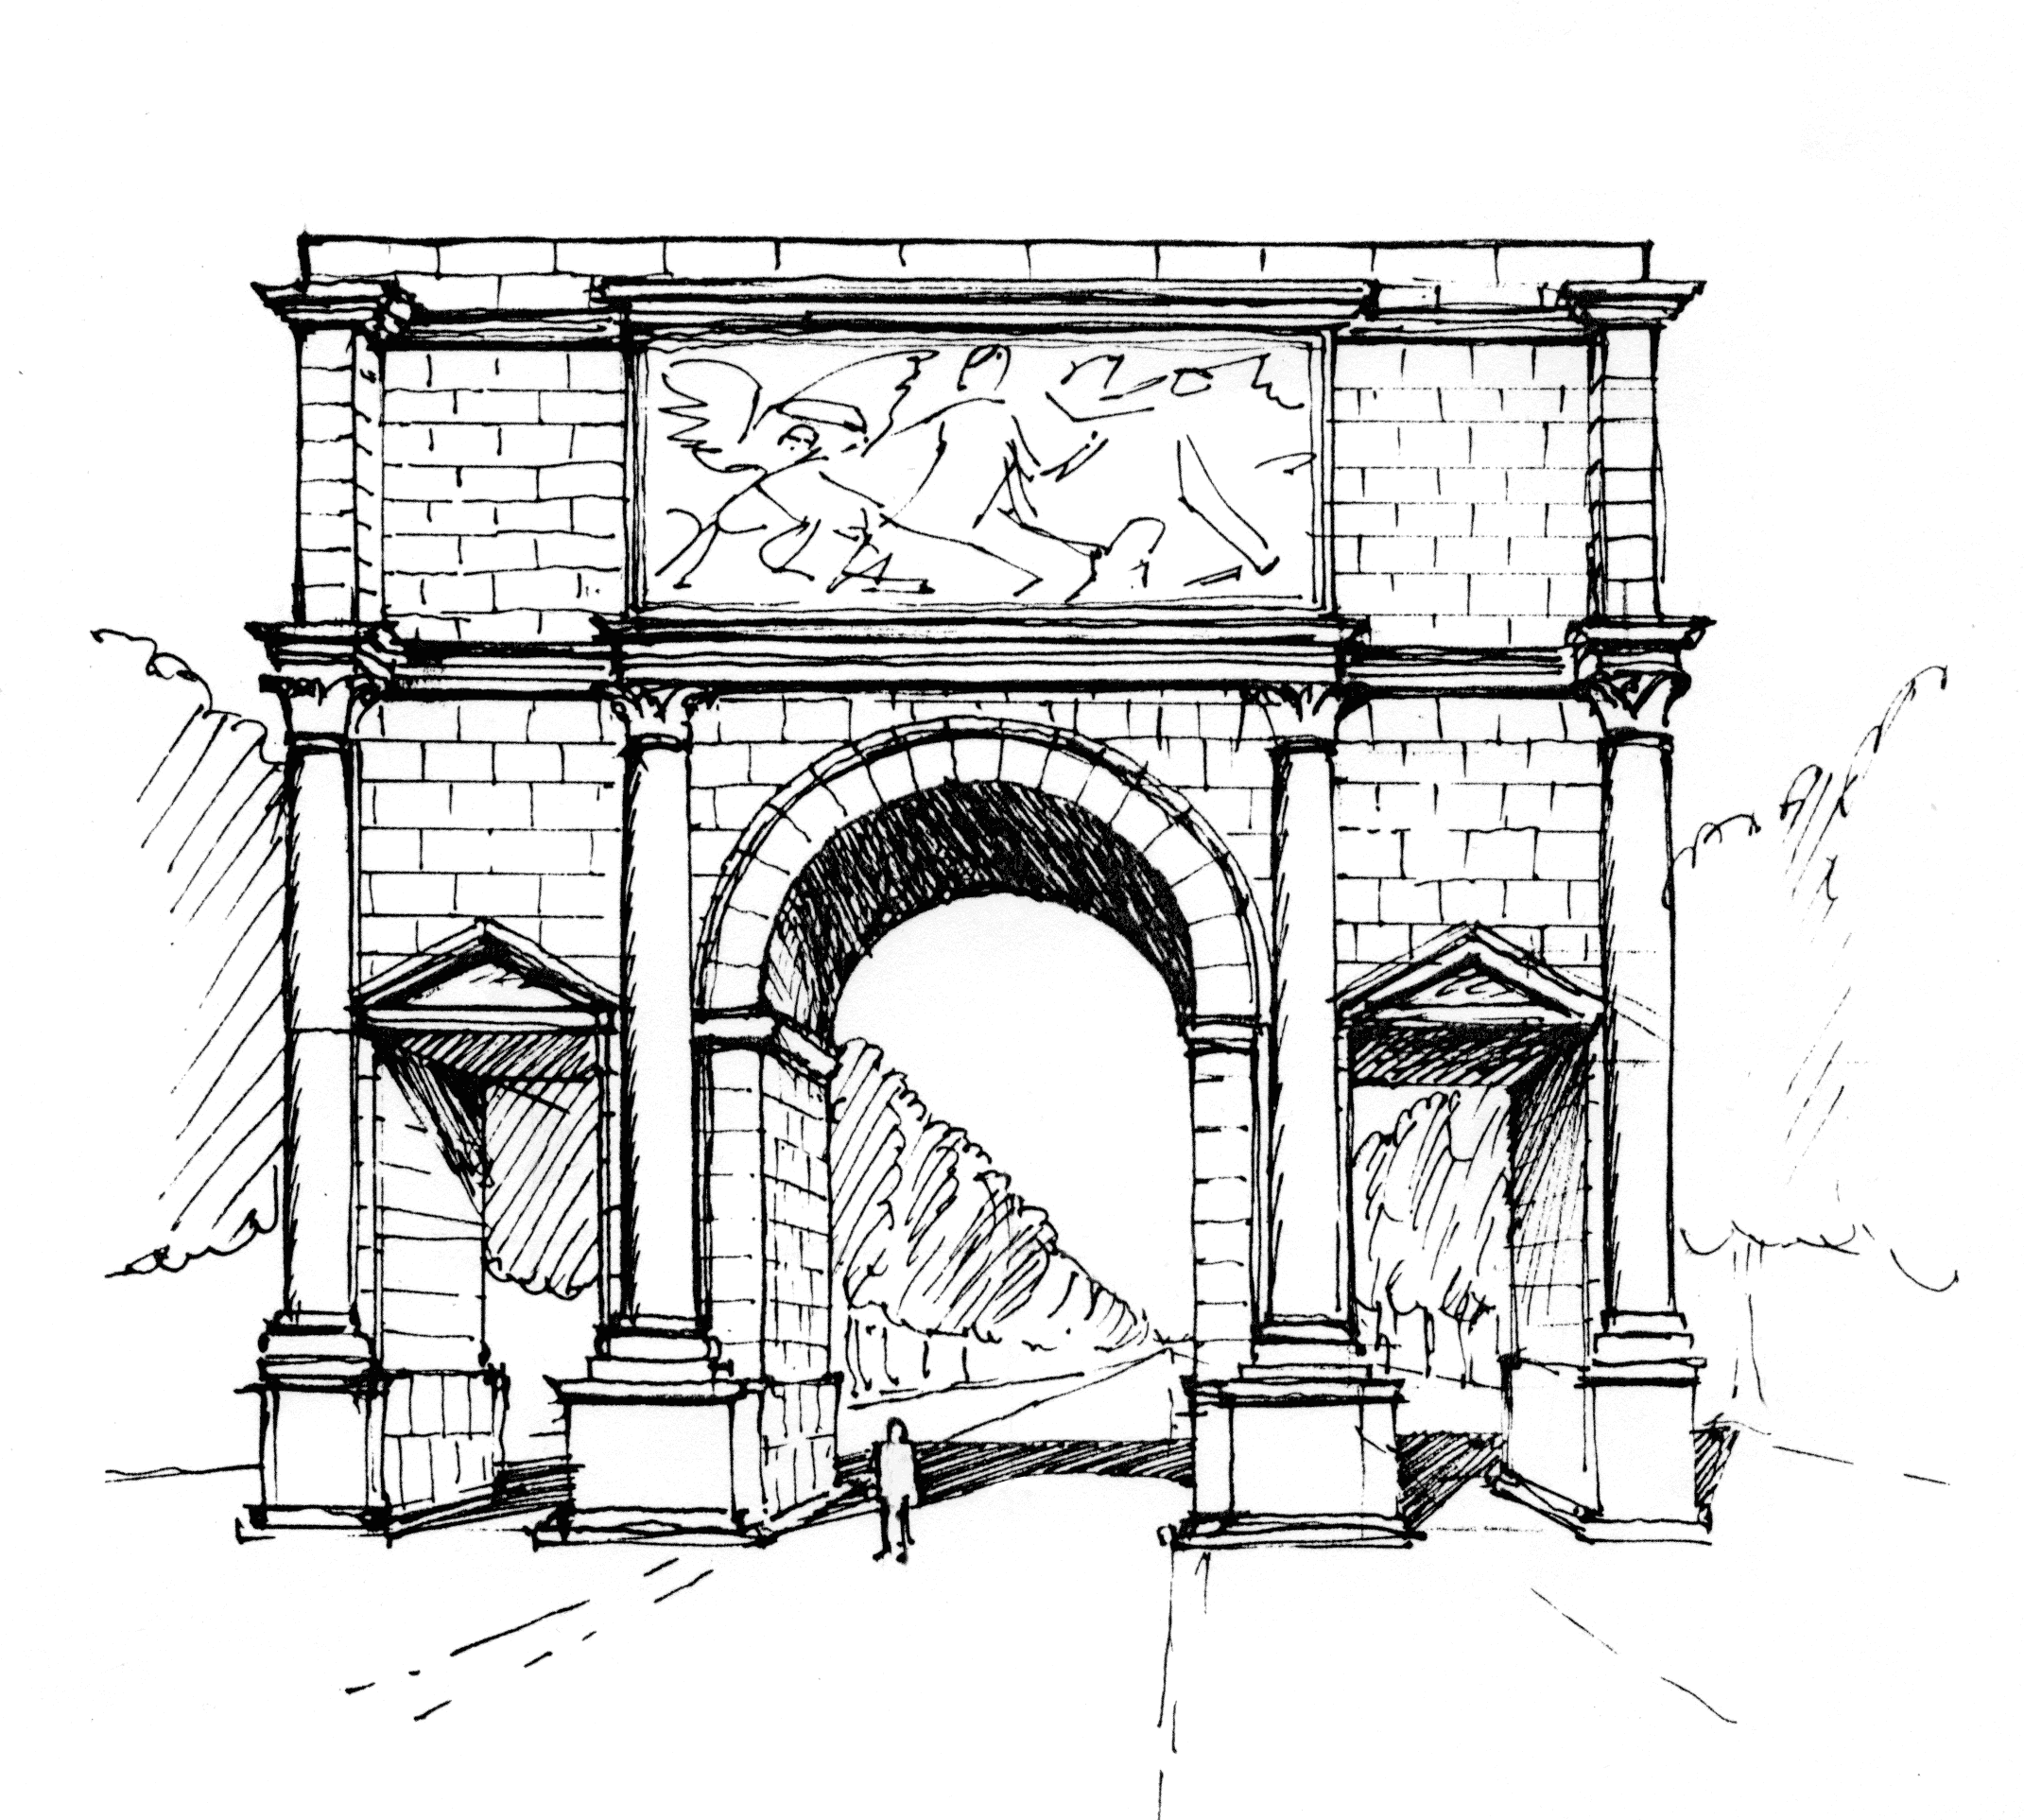 triumphal roman archs essay A plan view of the roman is similar to the series of arches of the aqueducts although the aim here is clearly theatrical and more reminiscent of triumphal.